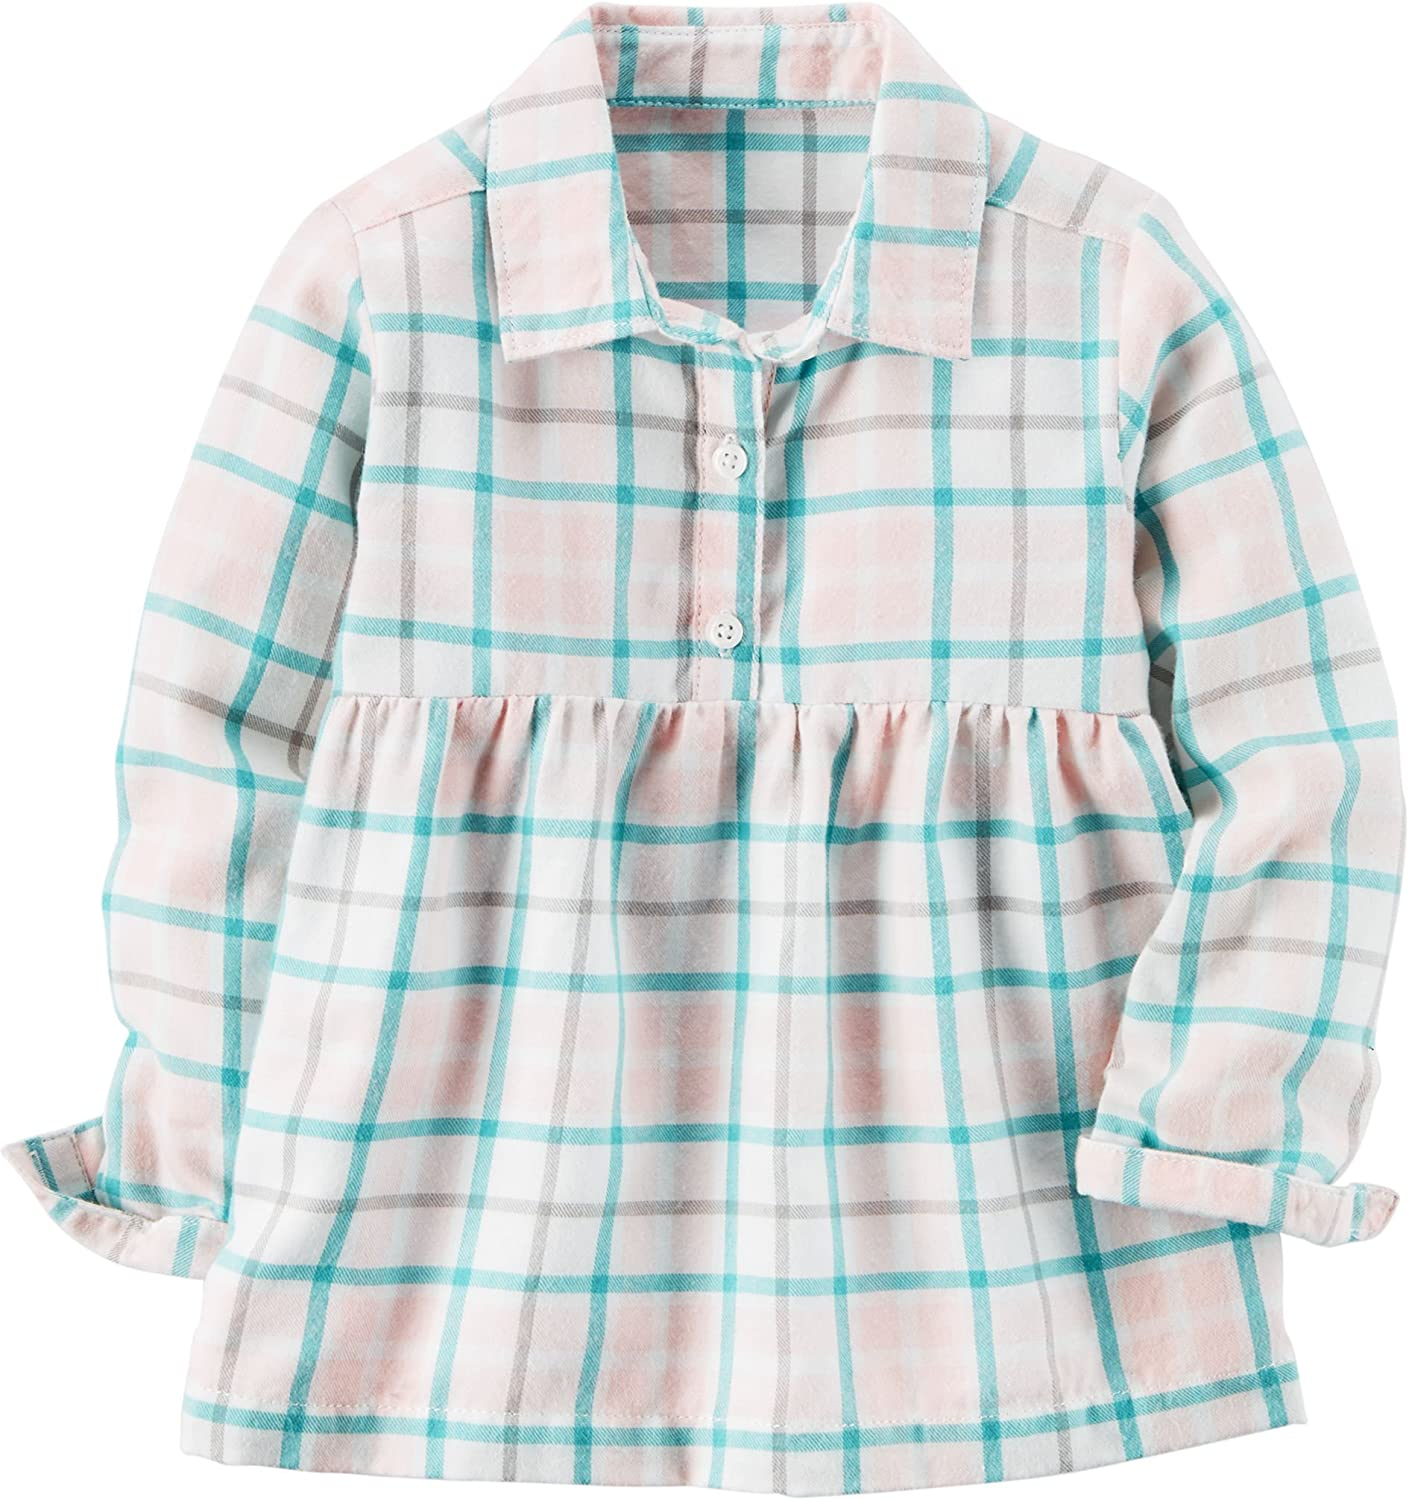 Carters Girls Pink Plaid Babydoll Top 6 Months